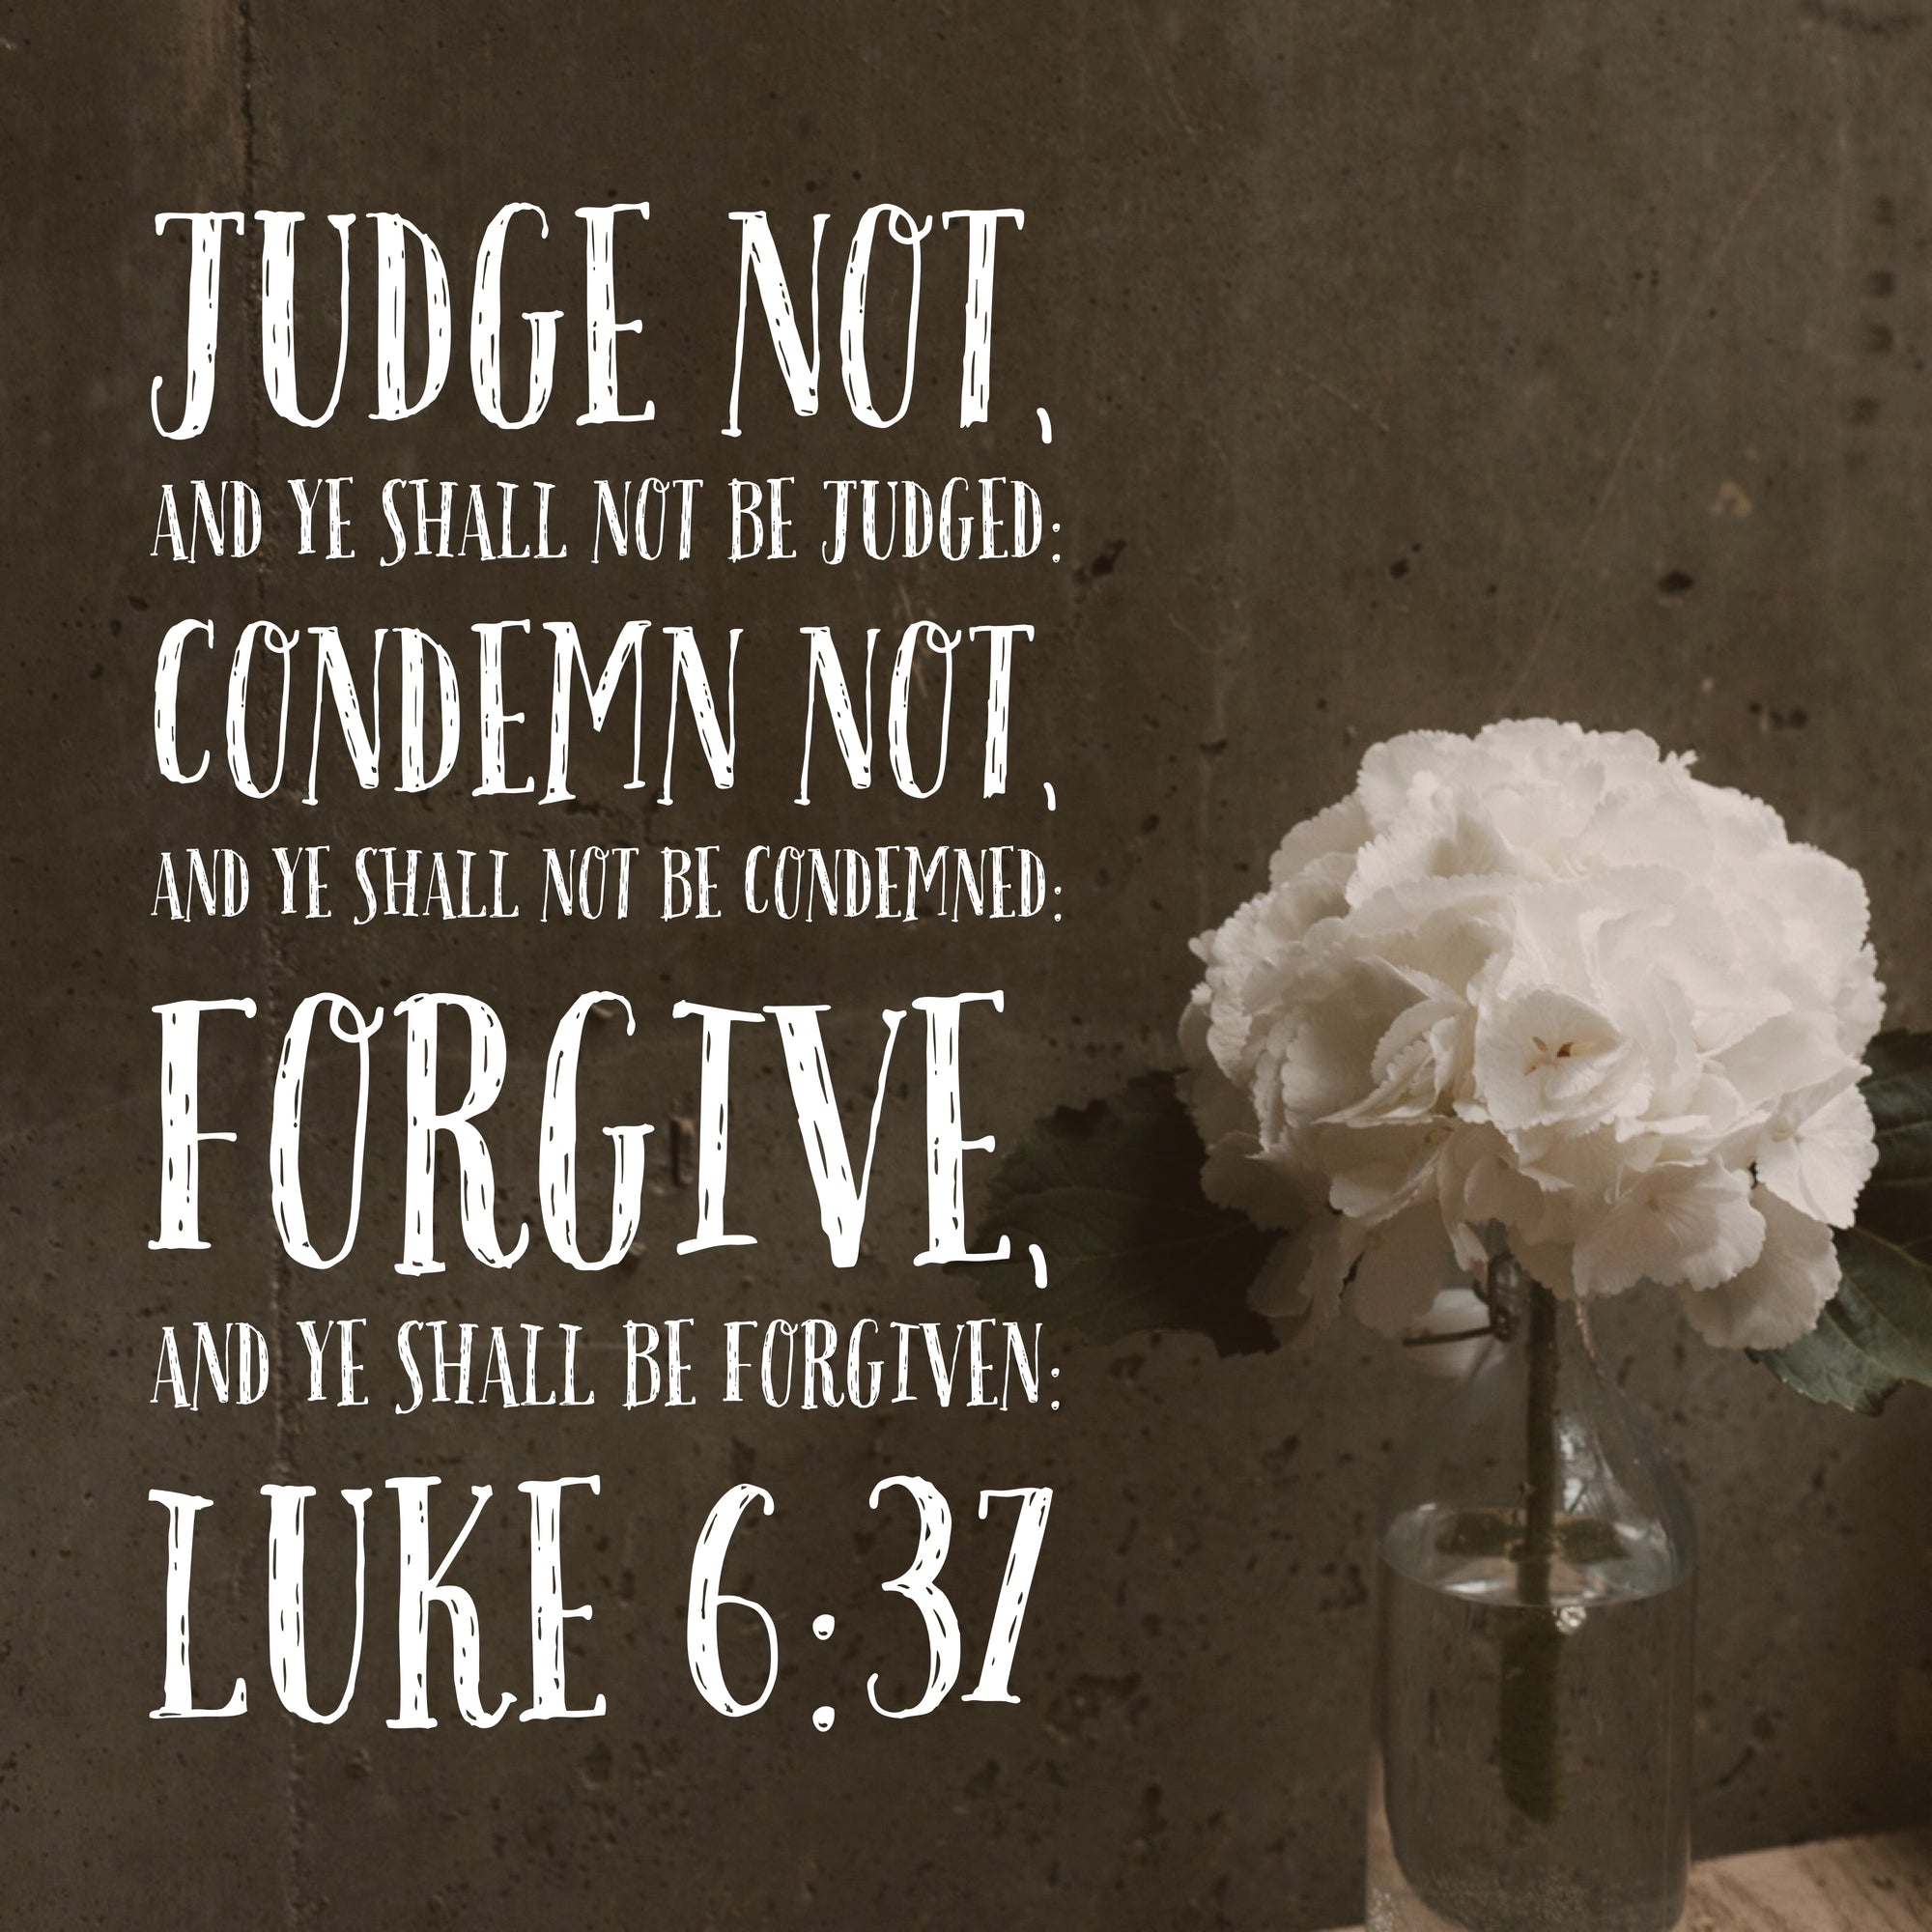 Luke 6:37 - Forgive and Be Forgiven - Bible Verses To Go